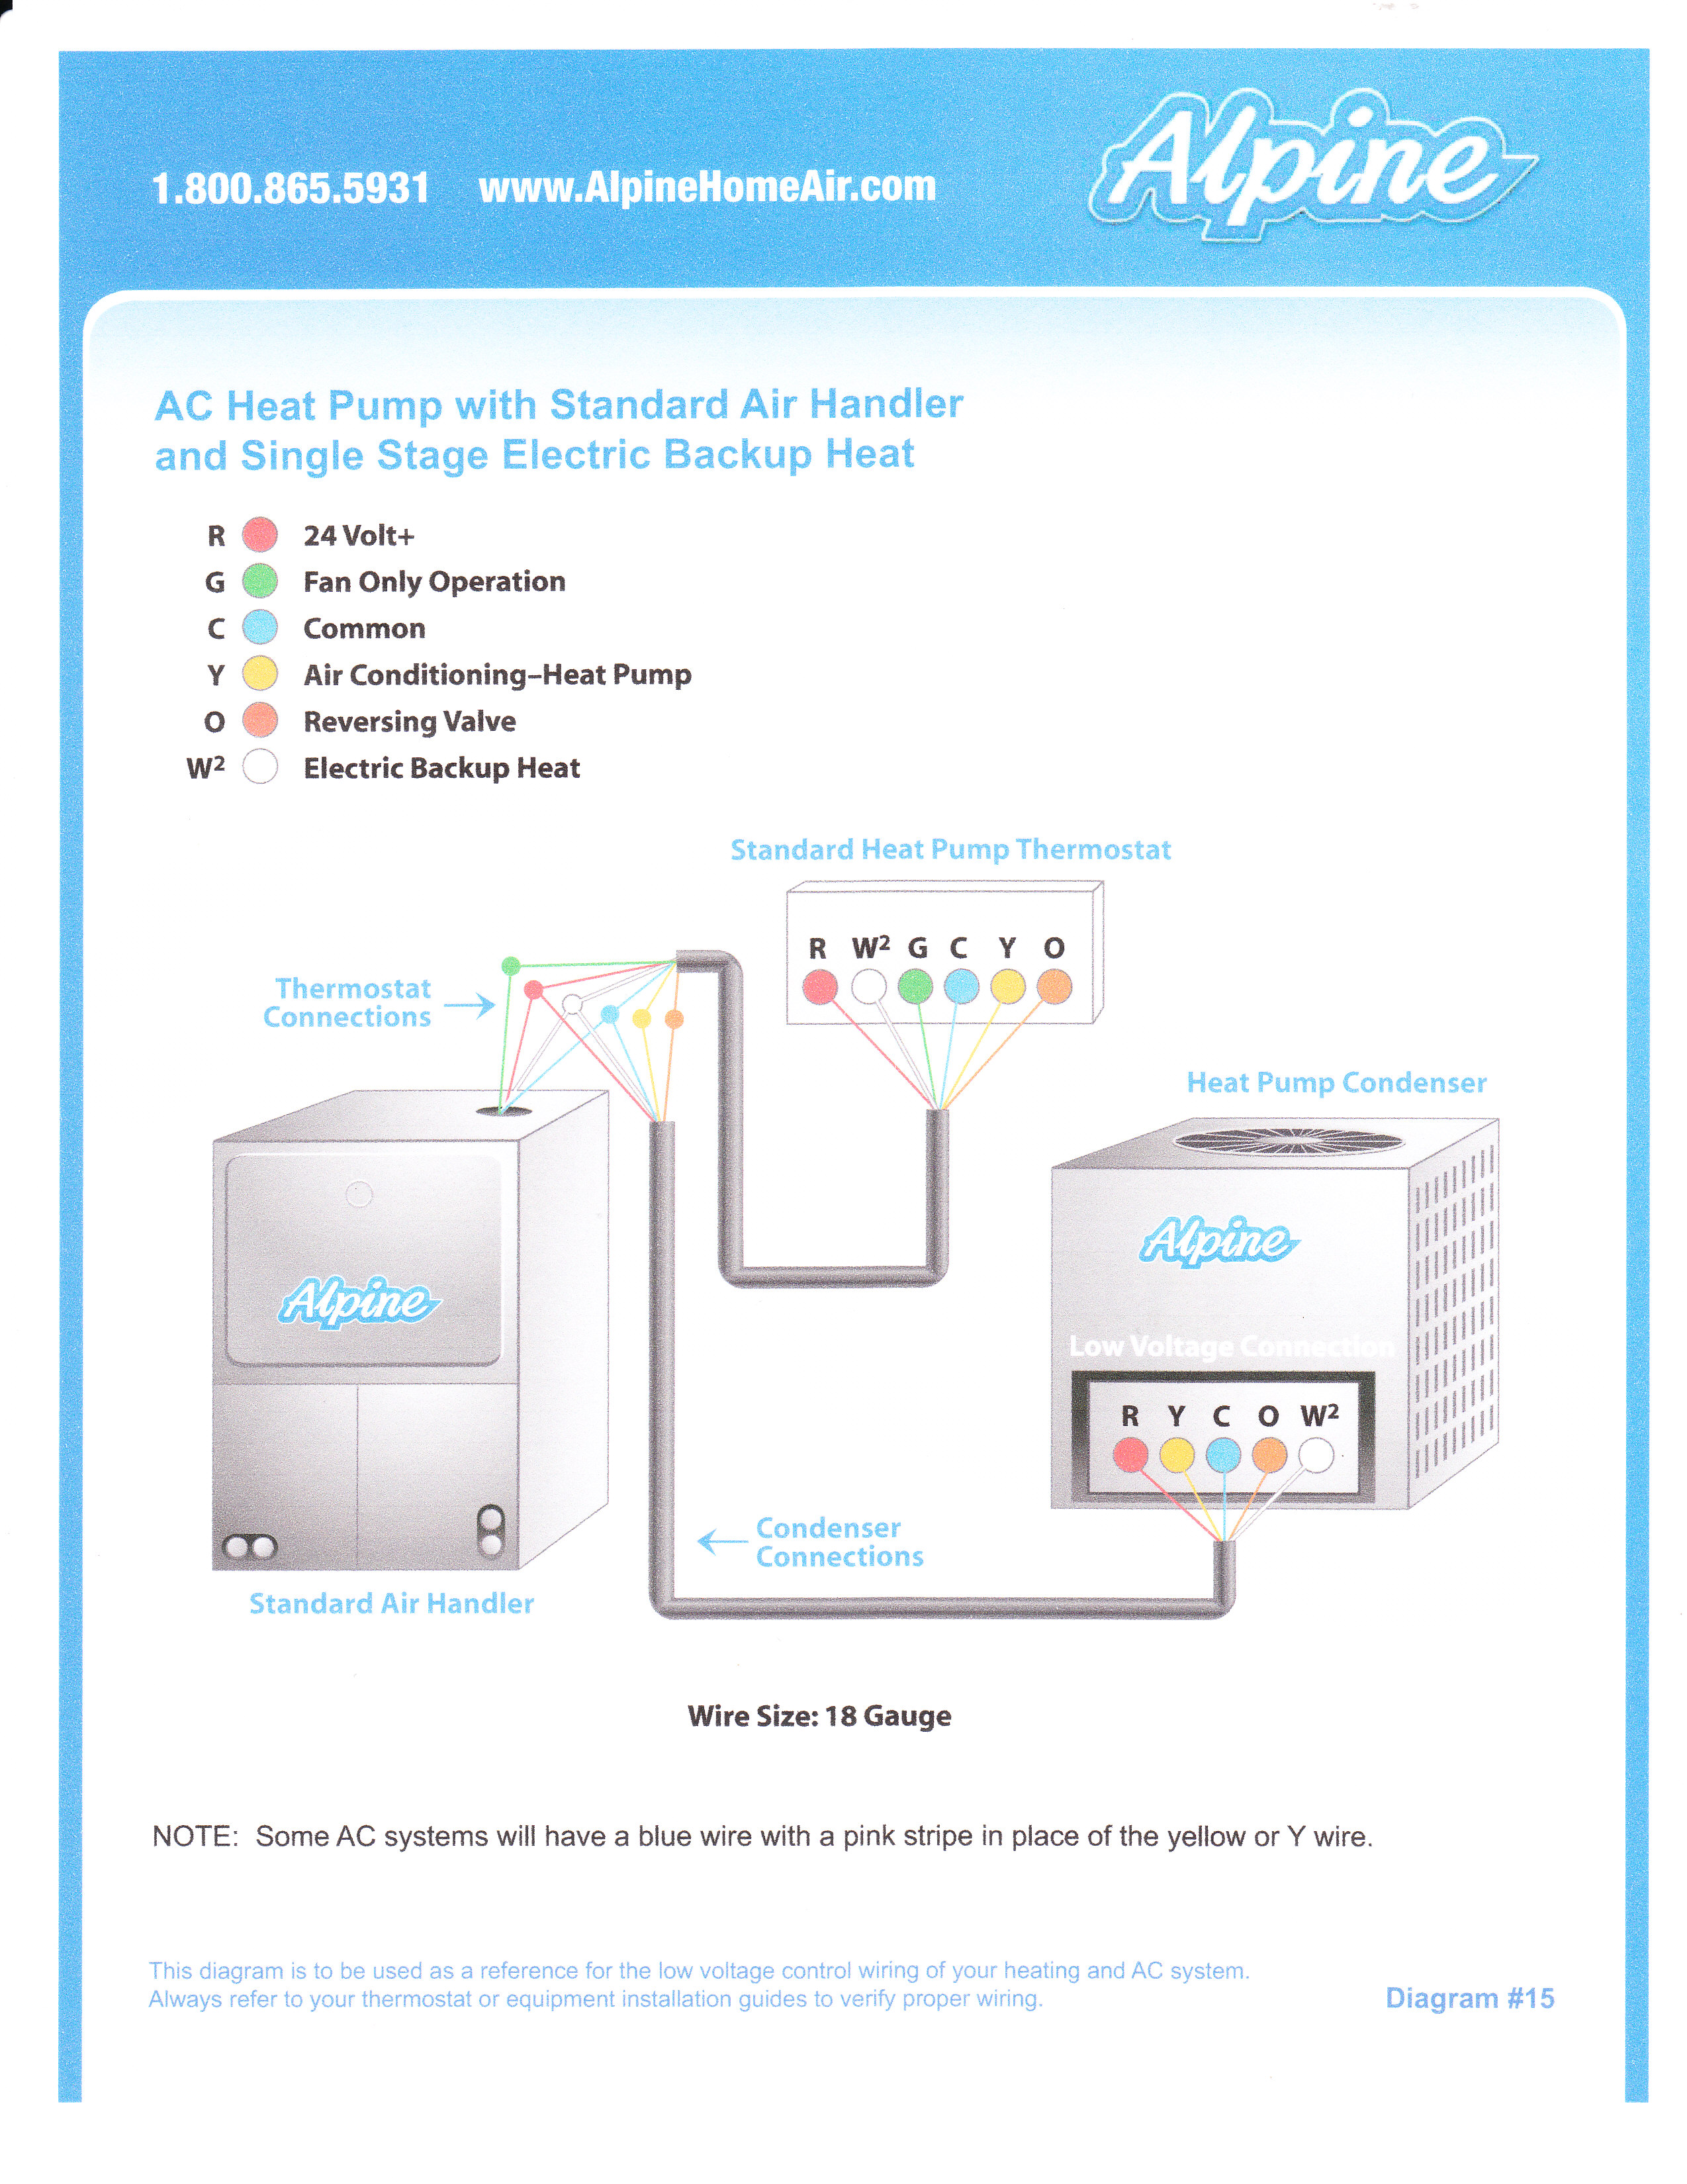 Goodman Air Handler Heat Strip Wiring Diagram in addition Goodman Heat Pump Wiring Diagram as well Coil Electric Furnace Heating Elements furthermore Nest Thermostat Wiring Diagram moreover Honeywell Programmable Thermostat. on goodman air handler heat strip wiring diagram